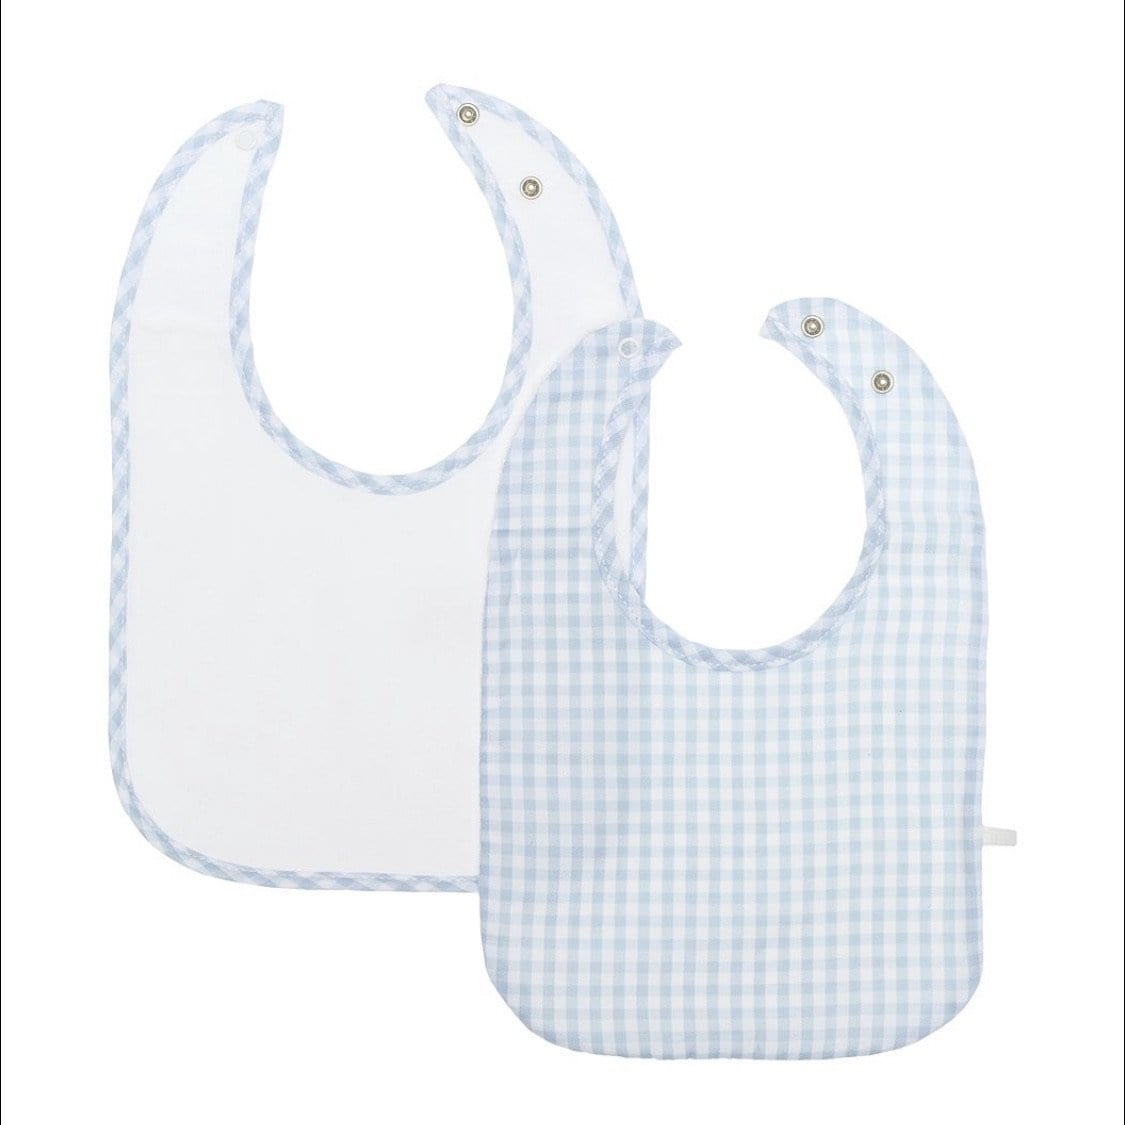 LARANJINHA BLUE GINGHAM BIB TWO PACK